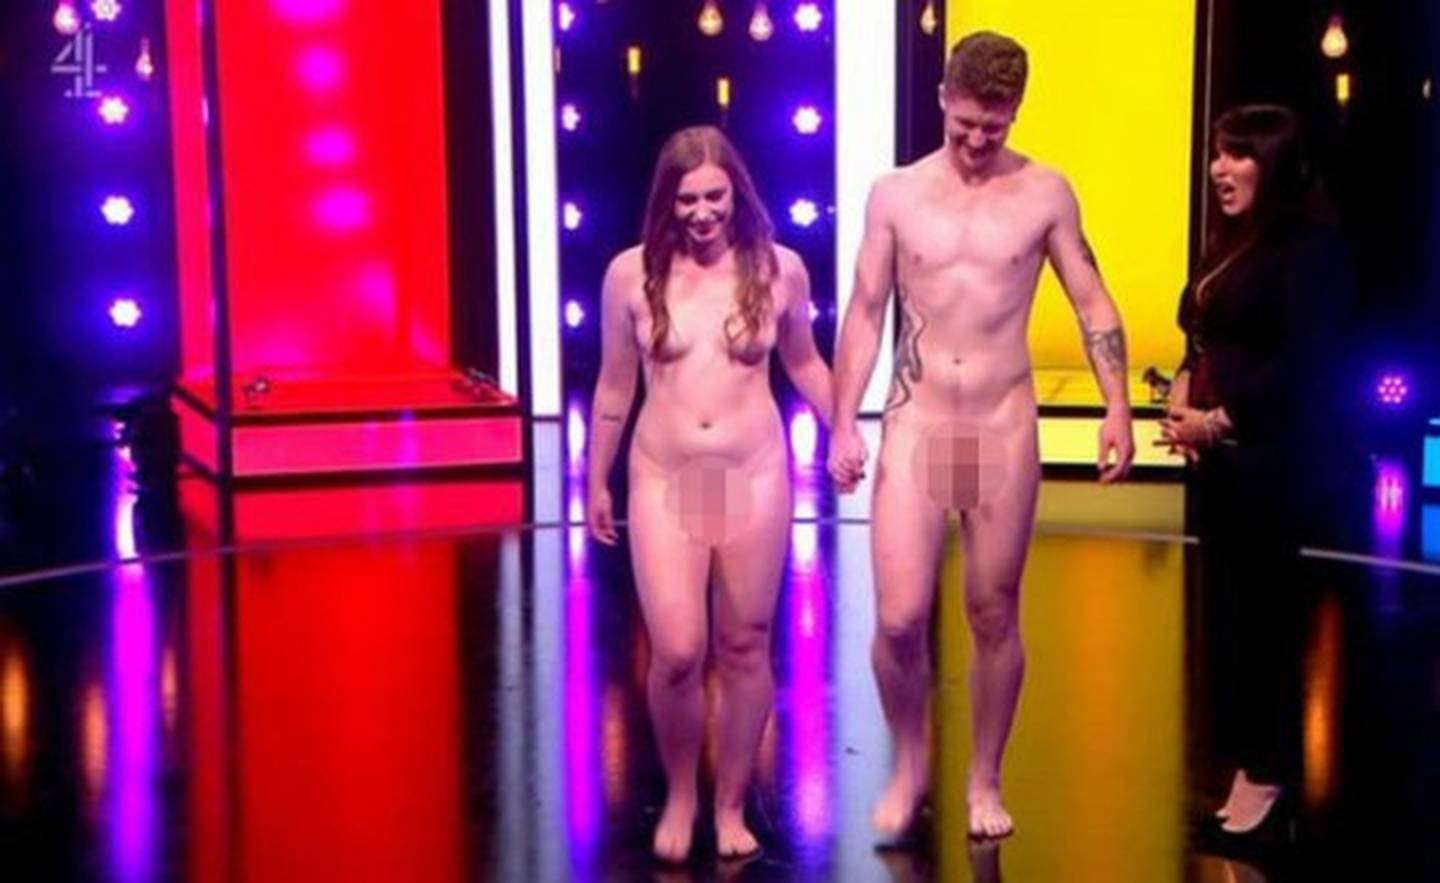 Contestants strip off in the hope of finding a date. Photo: Channel 4